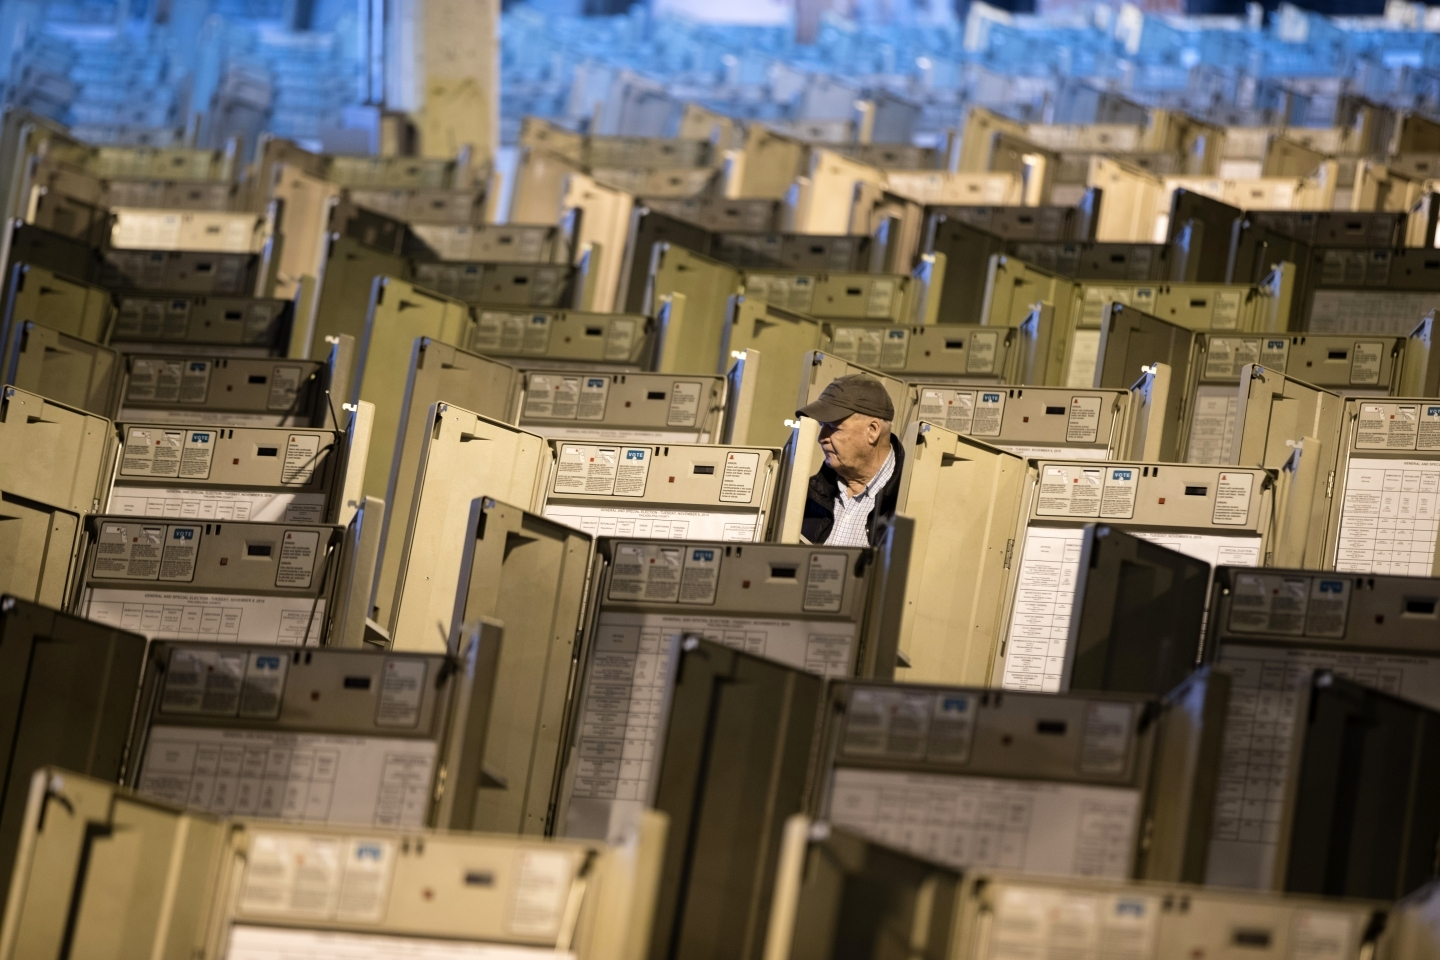 A technician works to prepare voting machines for voters in advance of the 2016 US presidential election. (AP Photo/Matt Rourke)